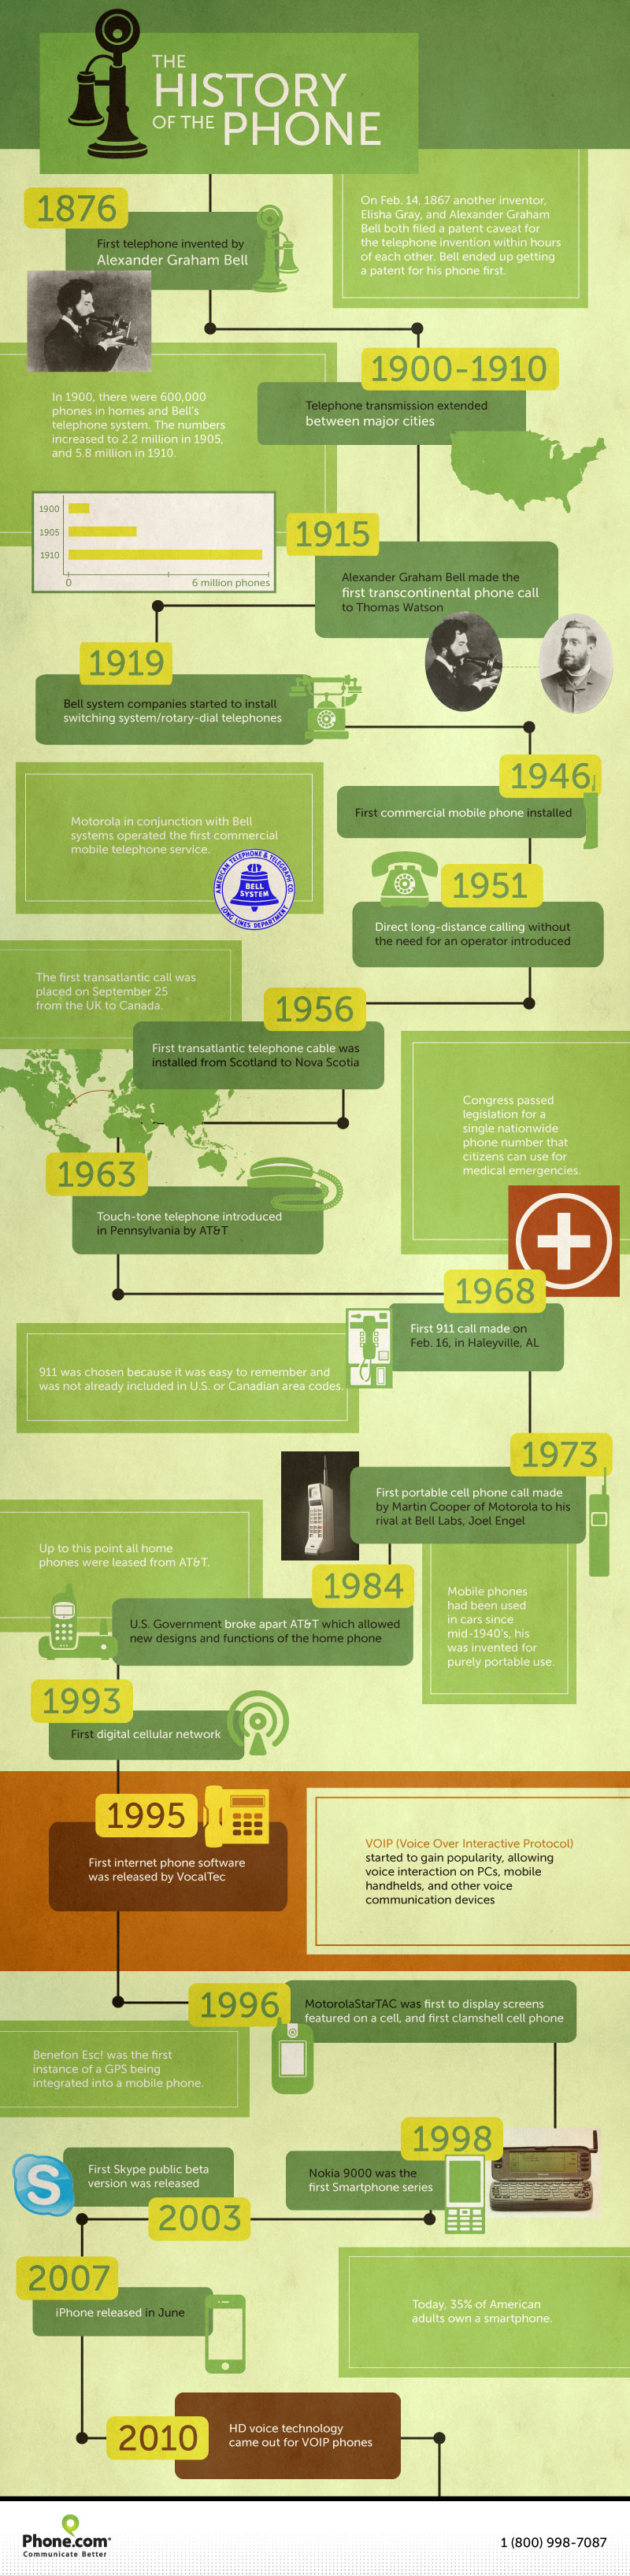 History of the Phone